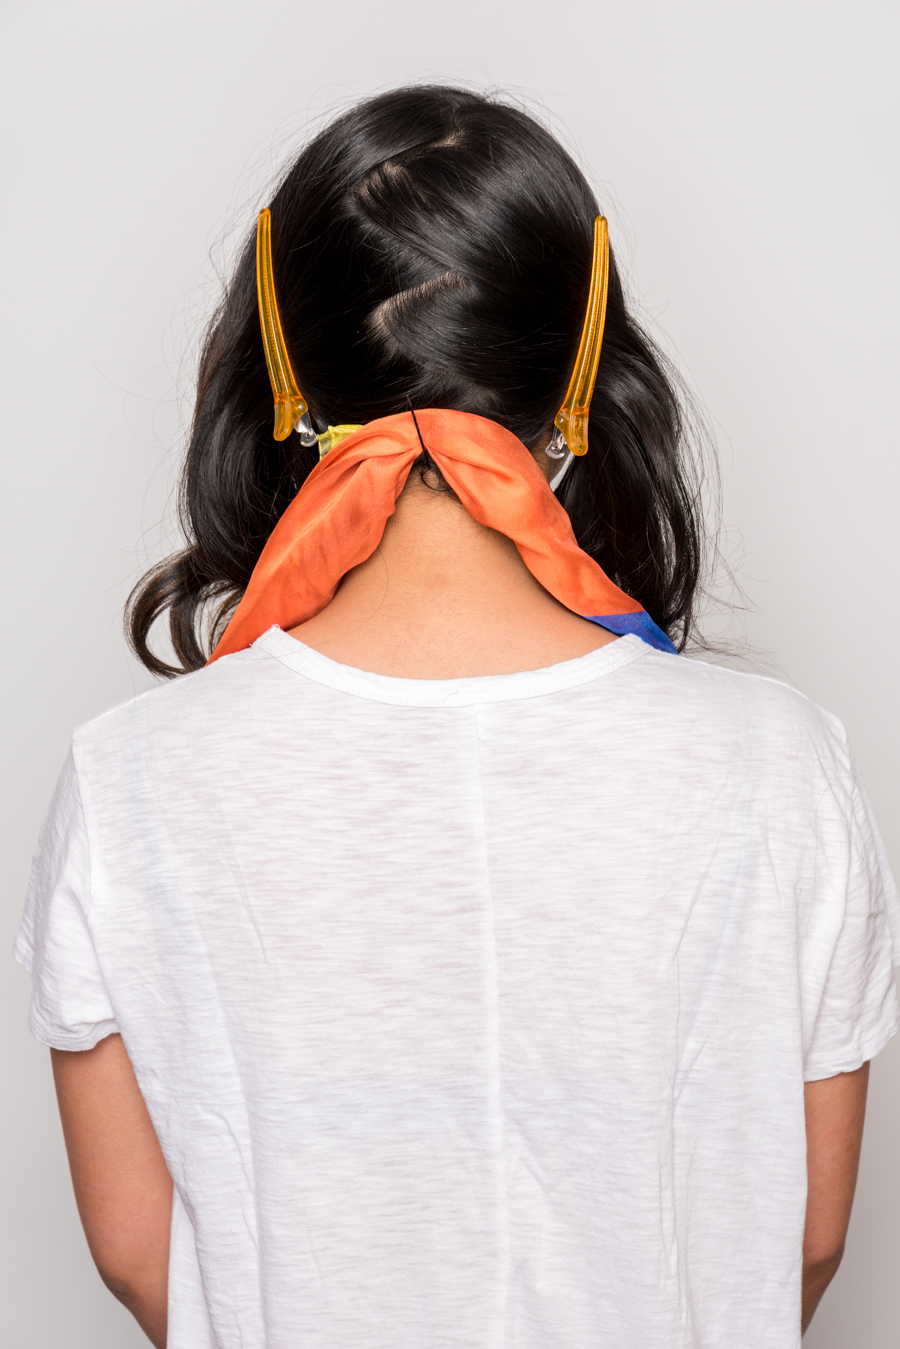 ROCK MAMA NYC LIFESTYLE BLOG-  HOW TO USE SCARF FOR STYLISH SUMMER HAIR